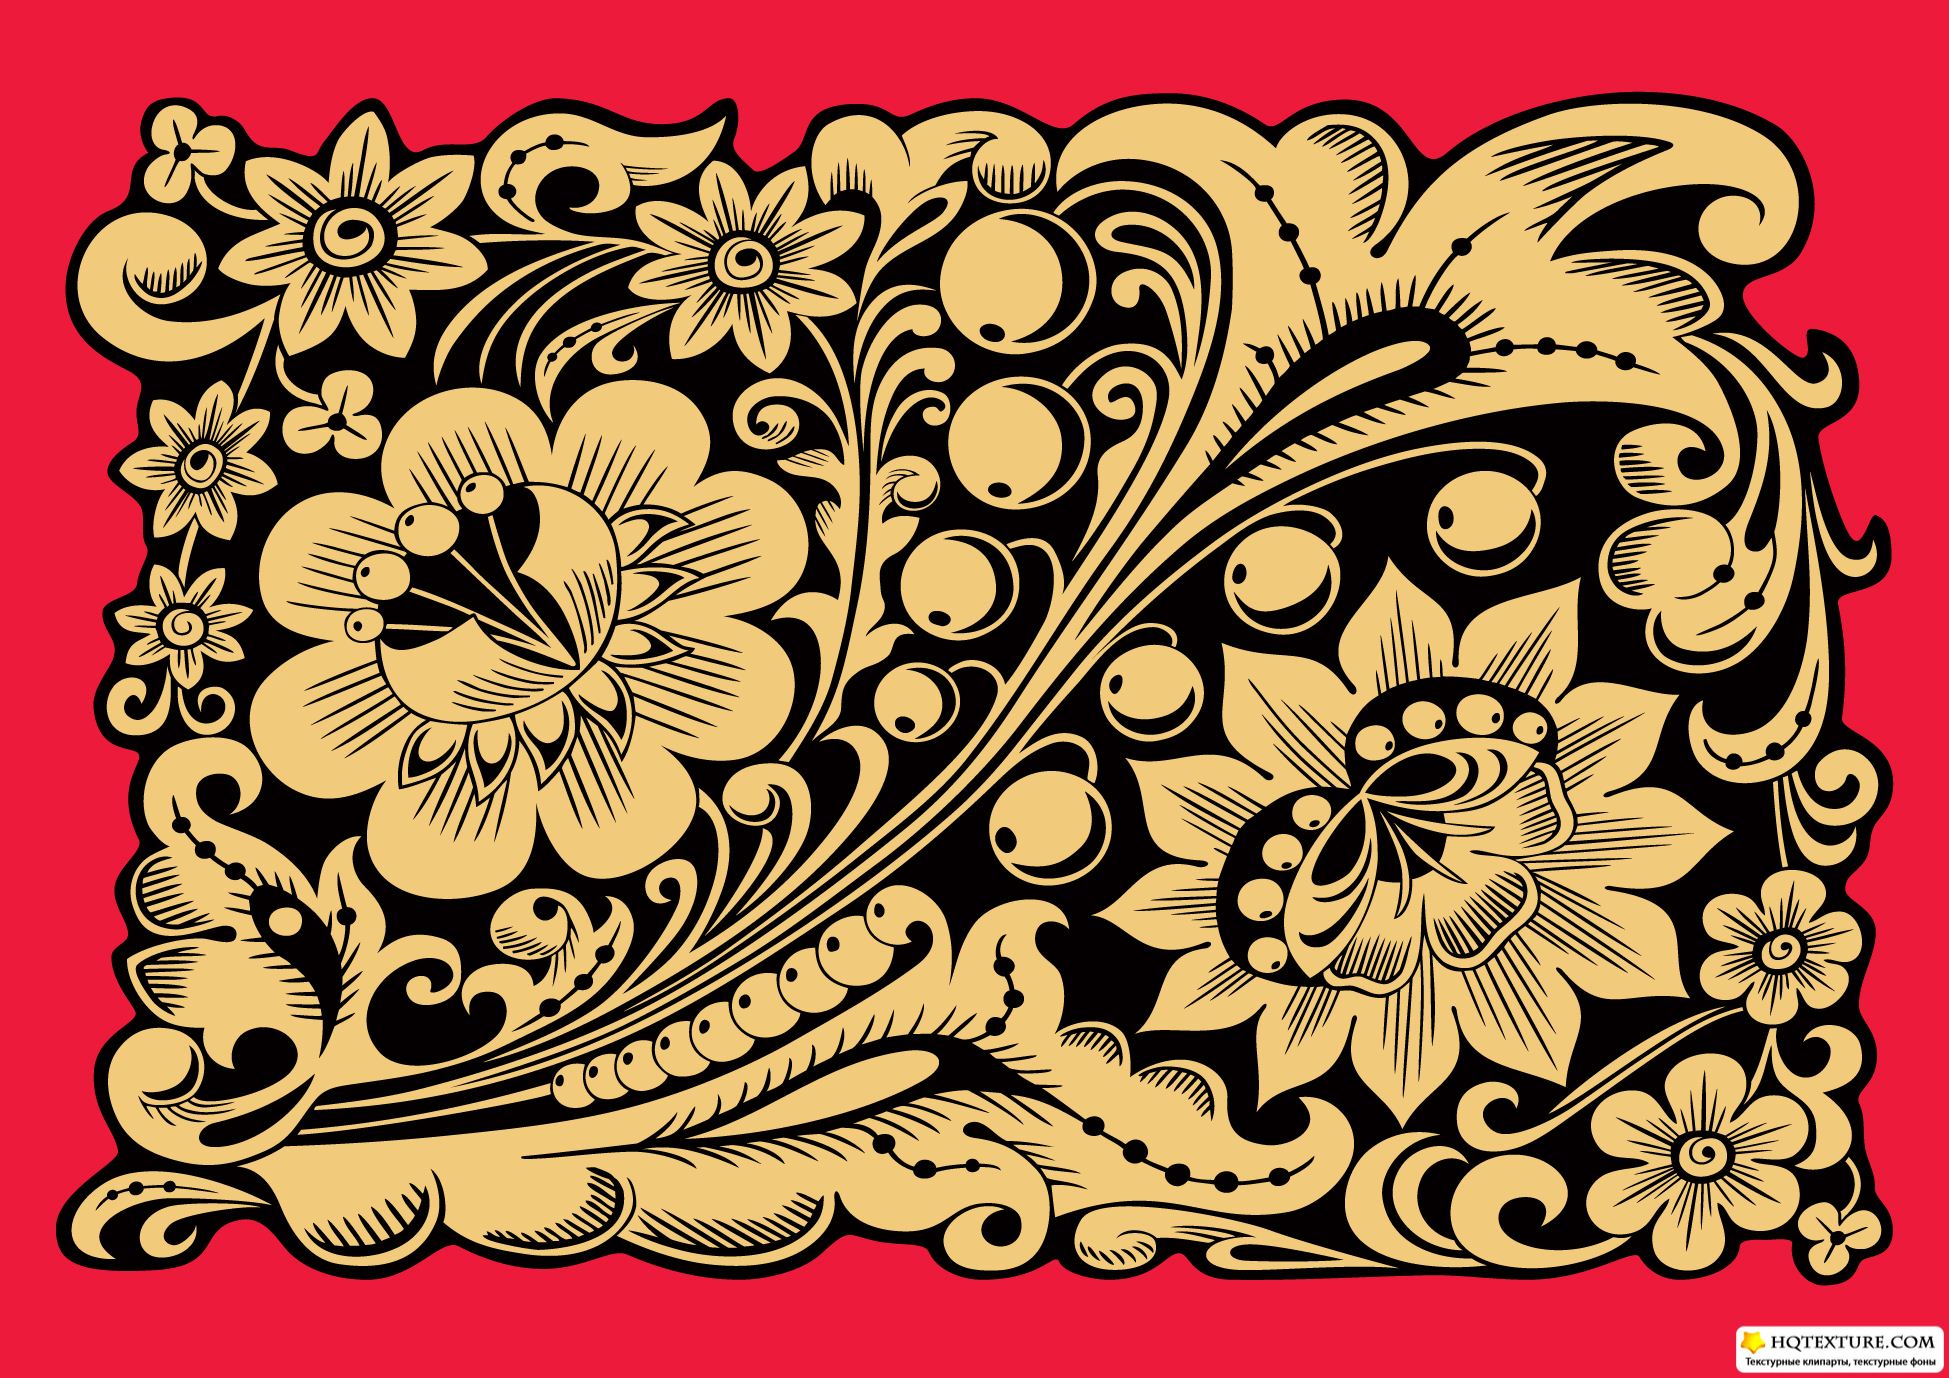 Russian ornaments stock vectors русские узоры